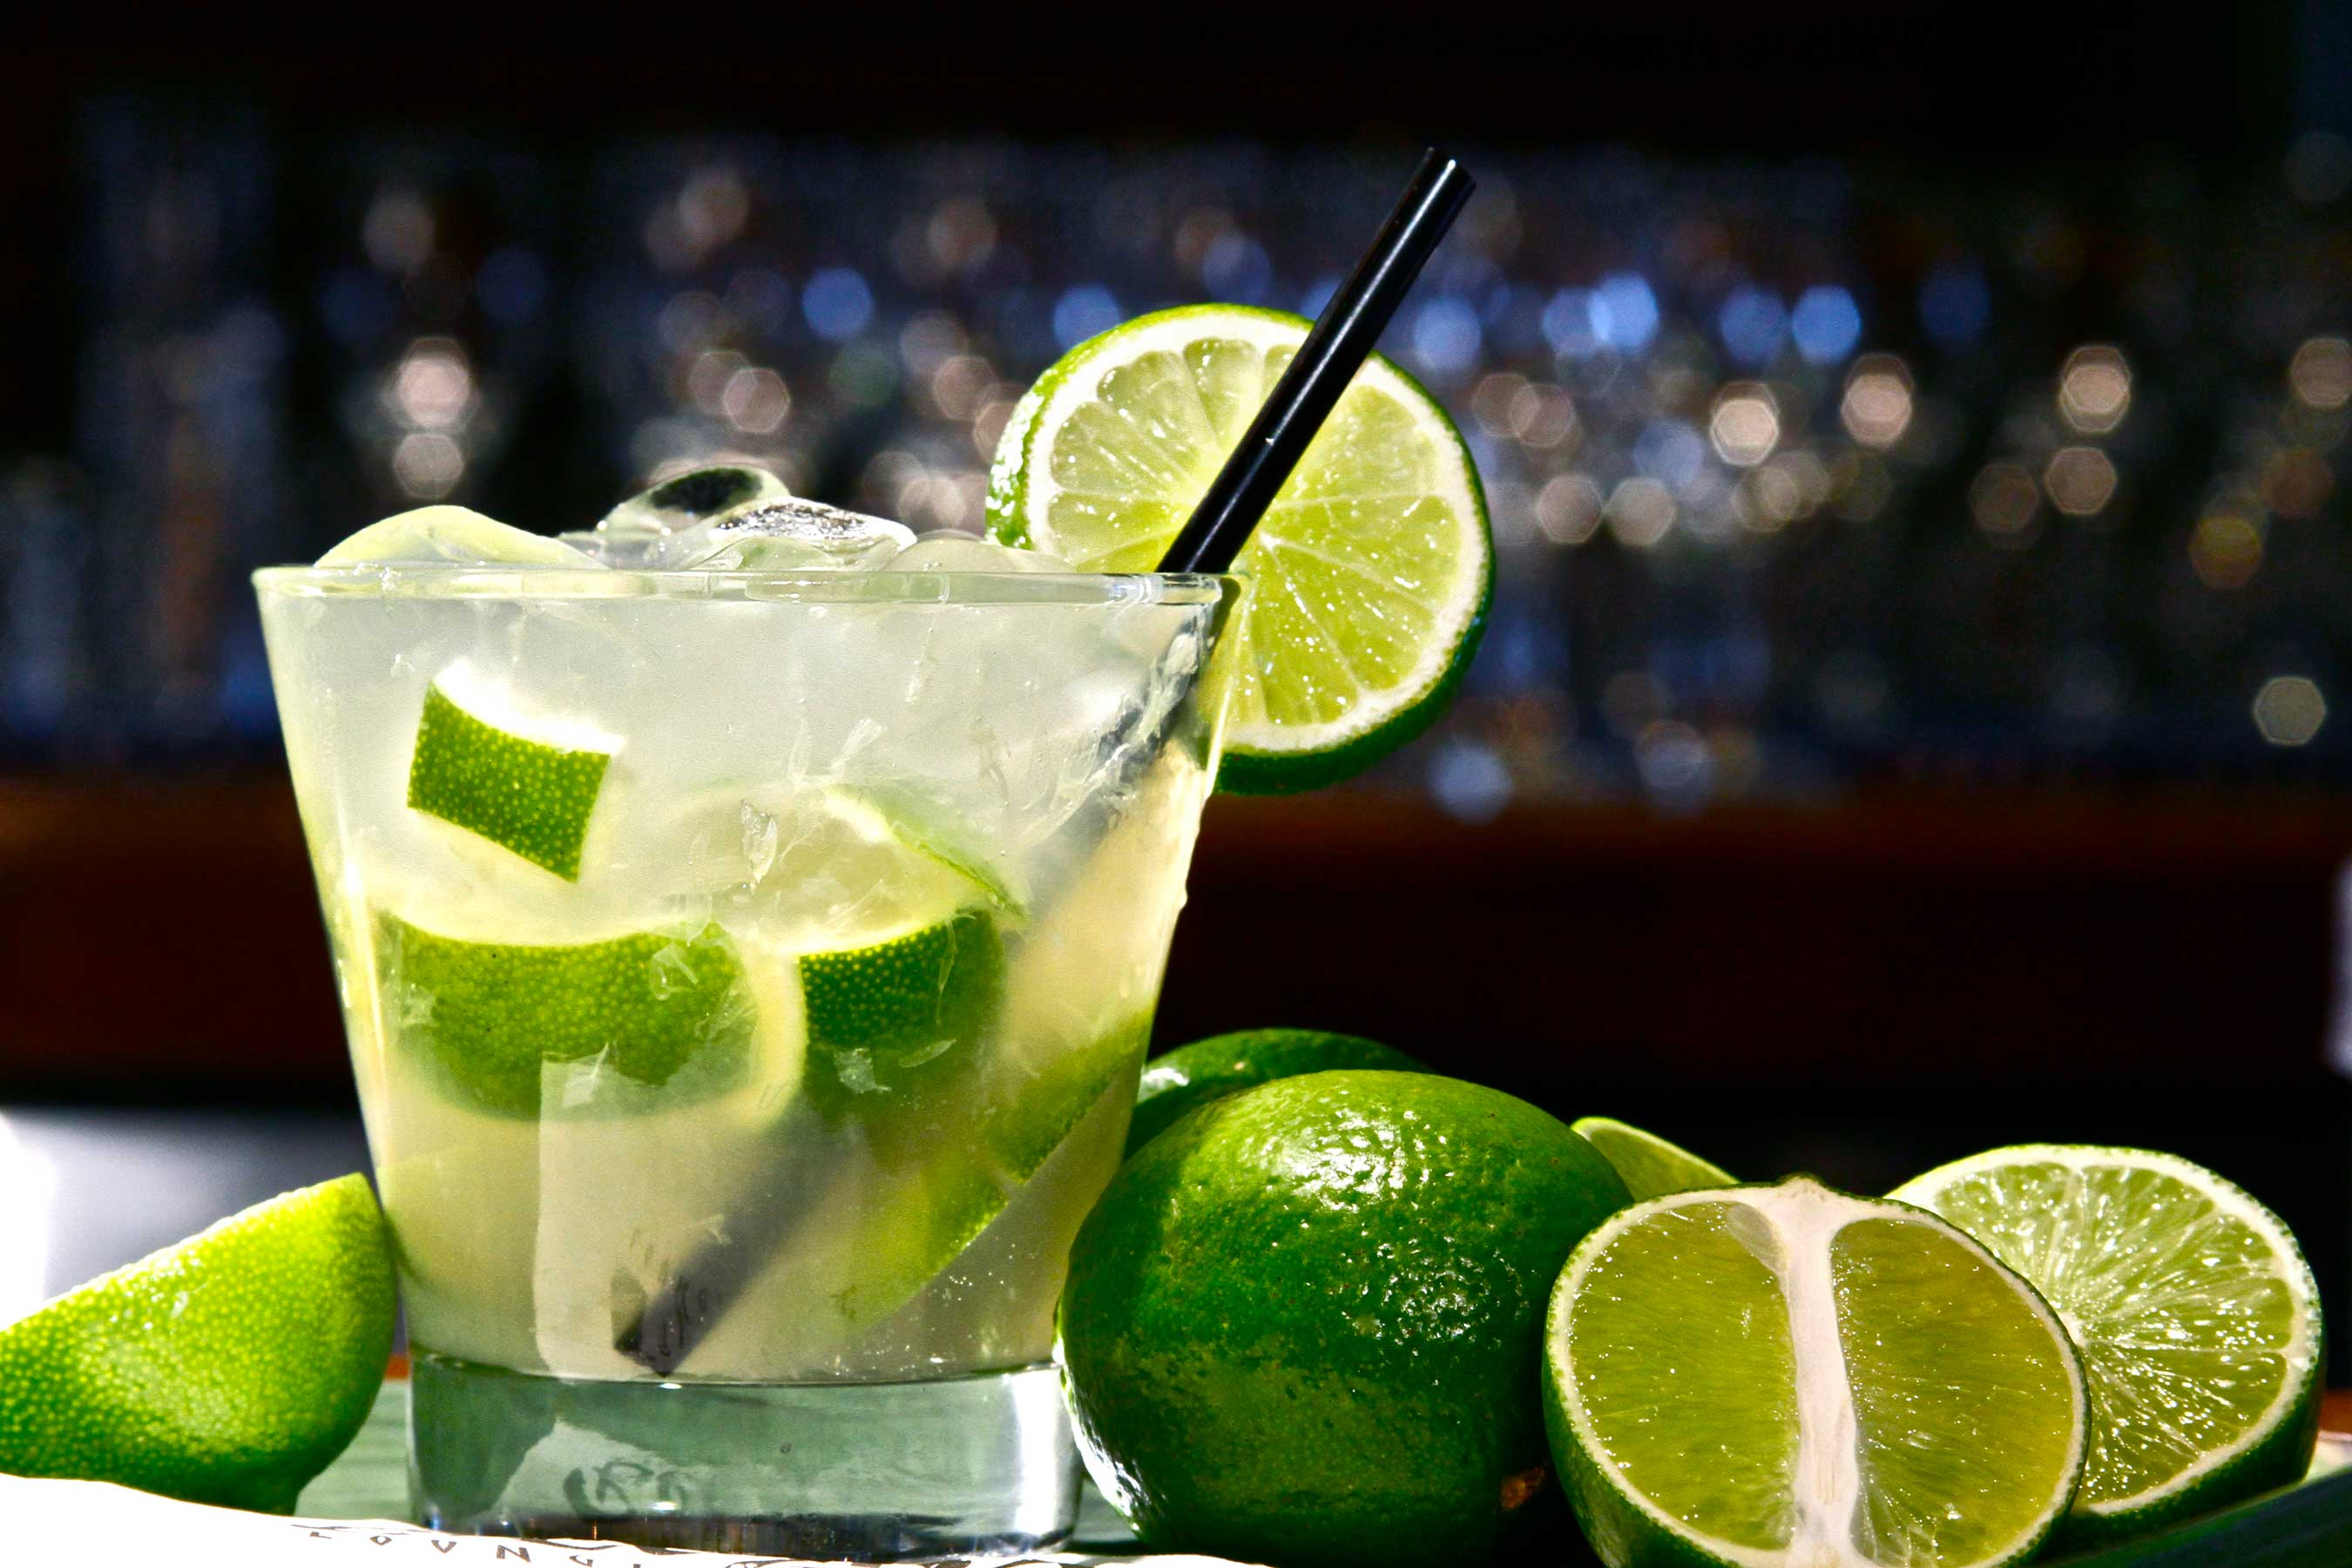 The Brazilian Caipirinha is a favored cocktail at Texas de Brazil and available in traditional lime plus a variety of flavors.